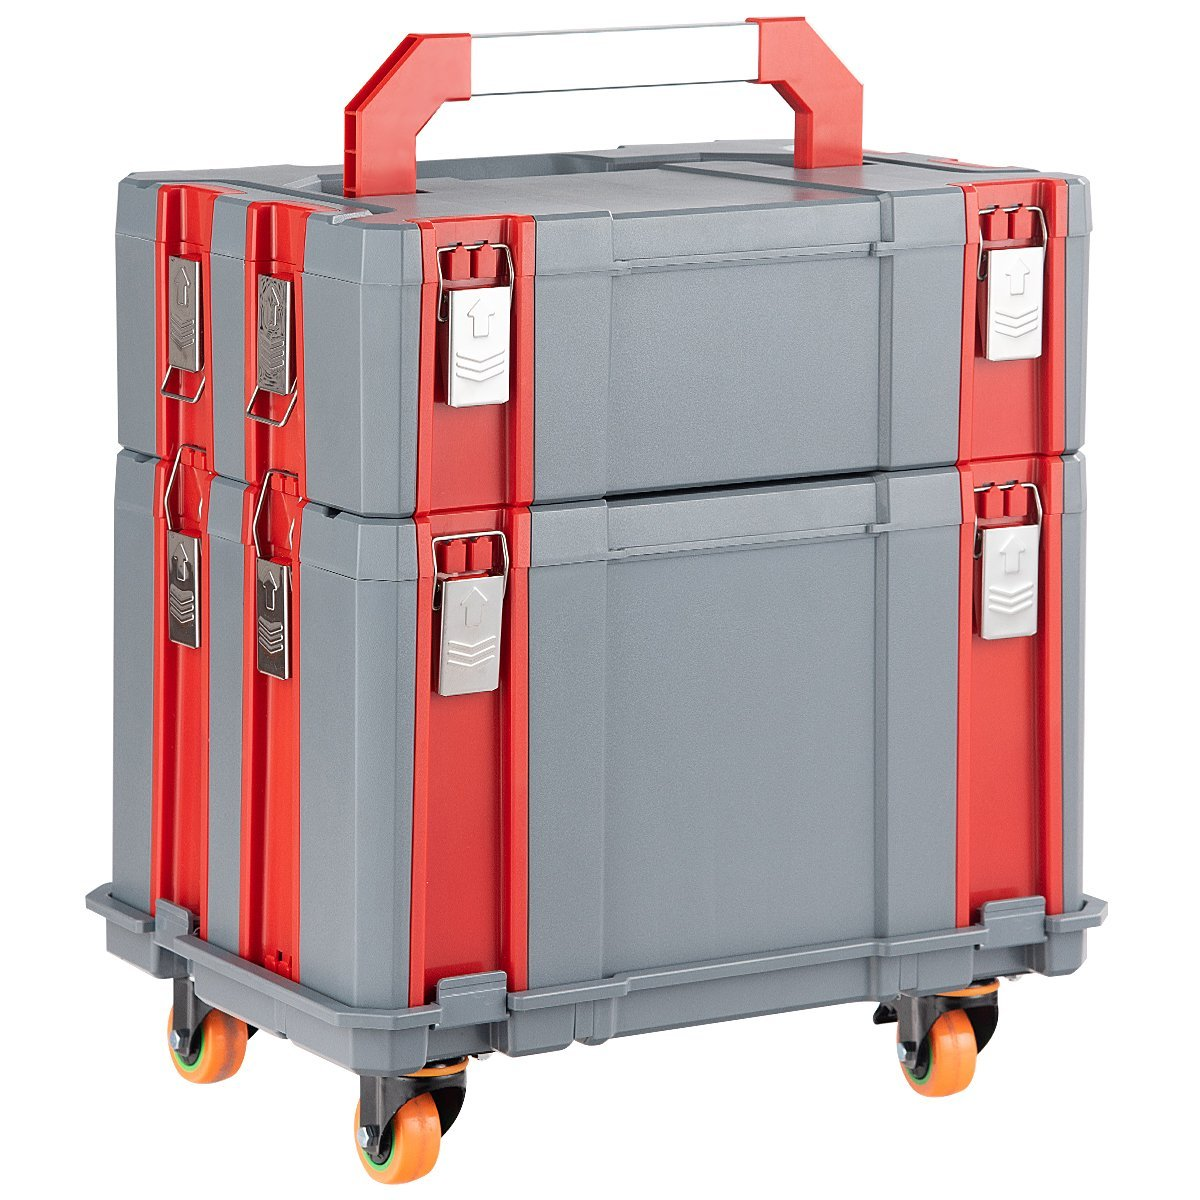 Goplus Detachable Tool Box Portable 3-part Organizer with 4 Wheels, 3 Handles Mobile Demountable Removable Tool Storage Box Set for Home, Garage and Work Shop by Goplus (Image #8)